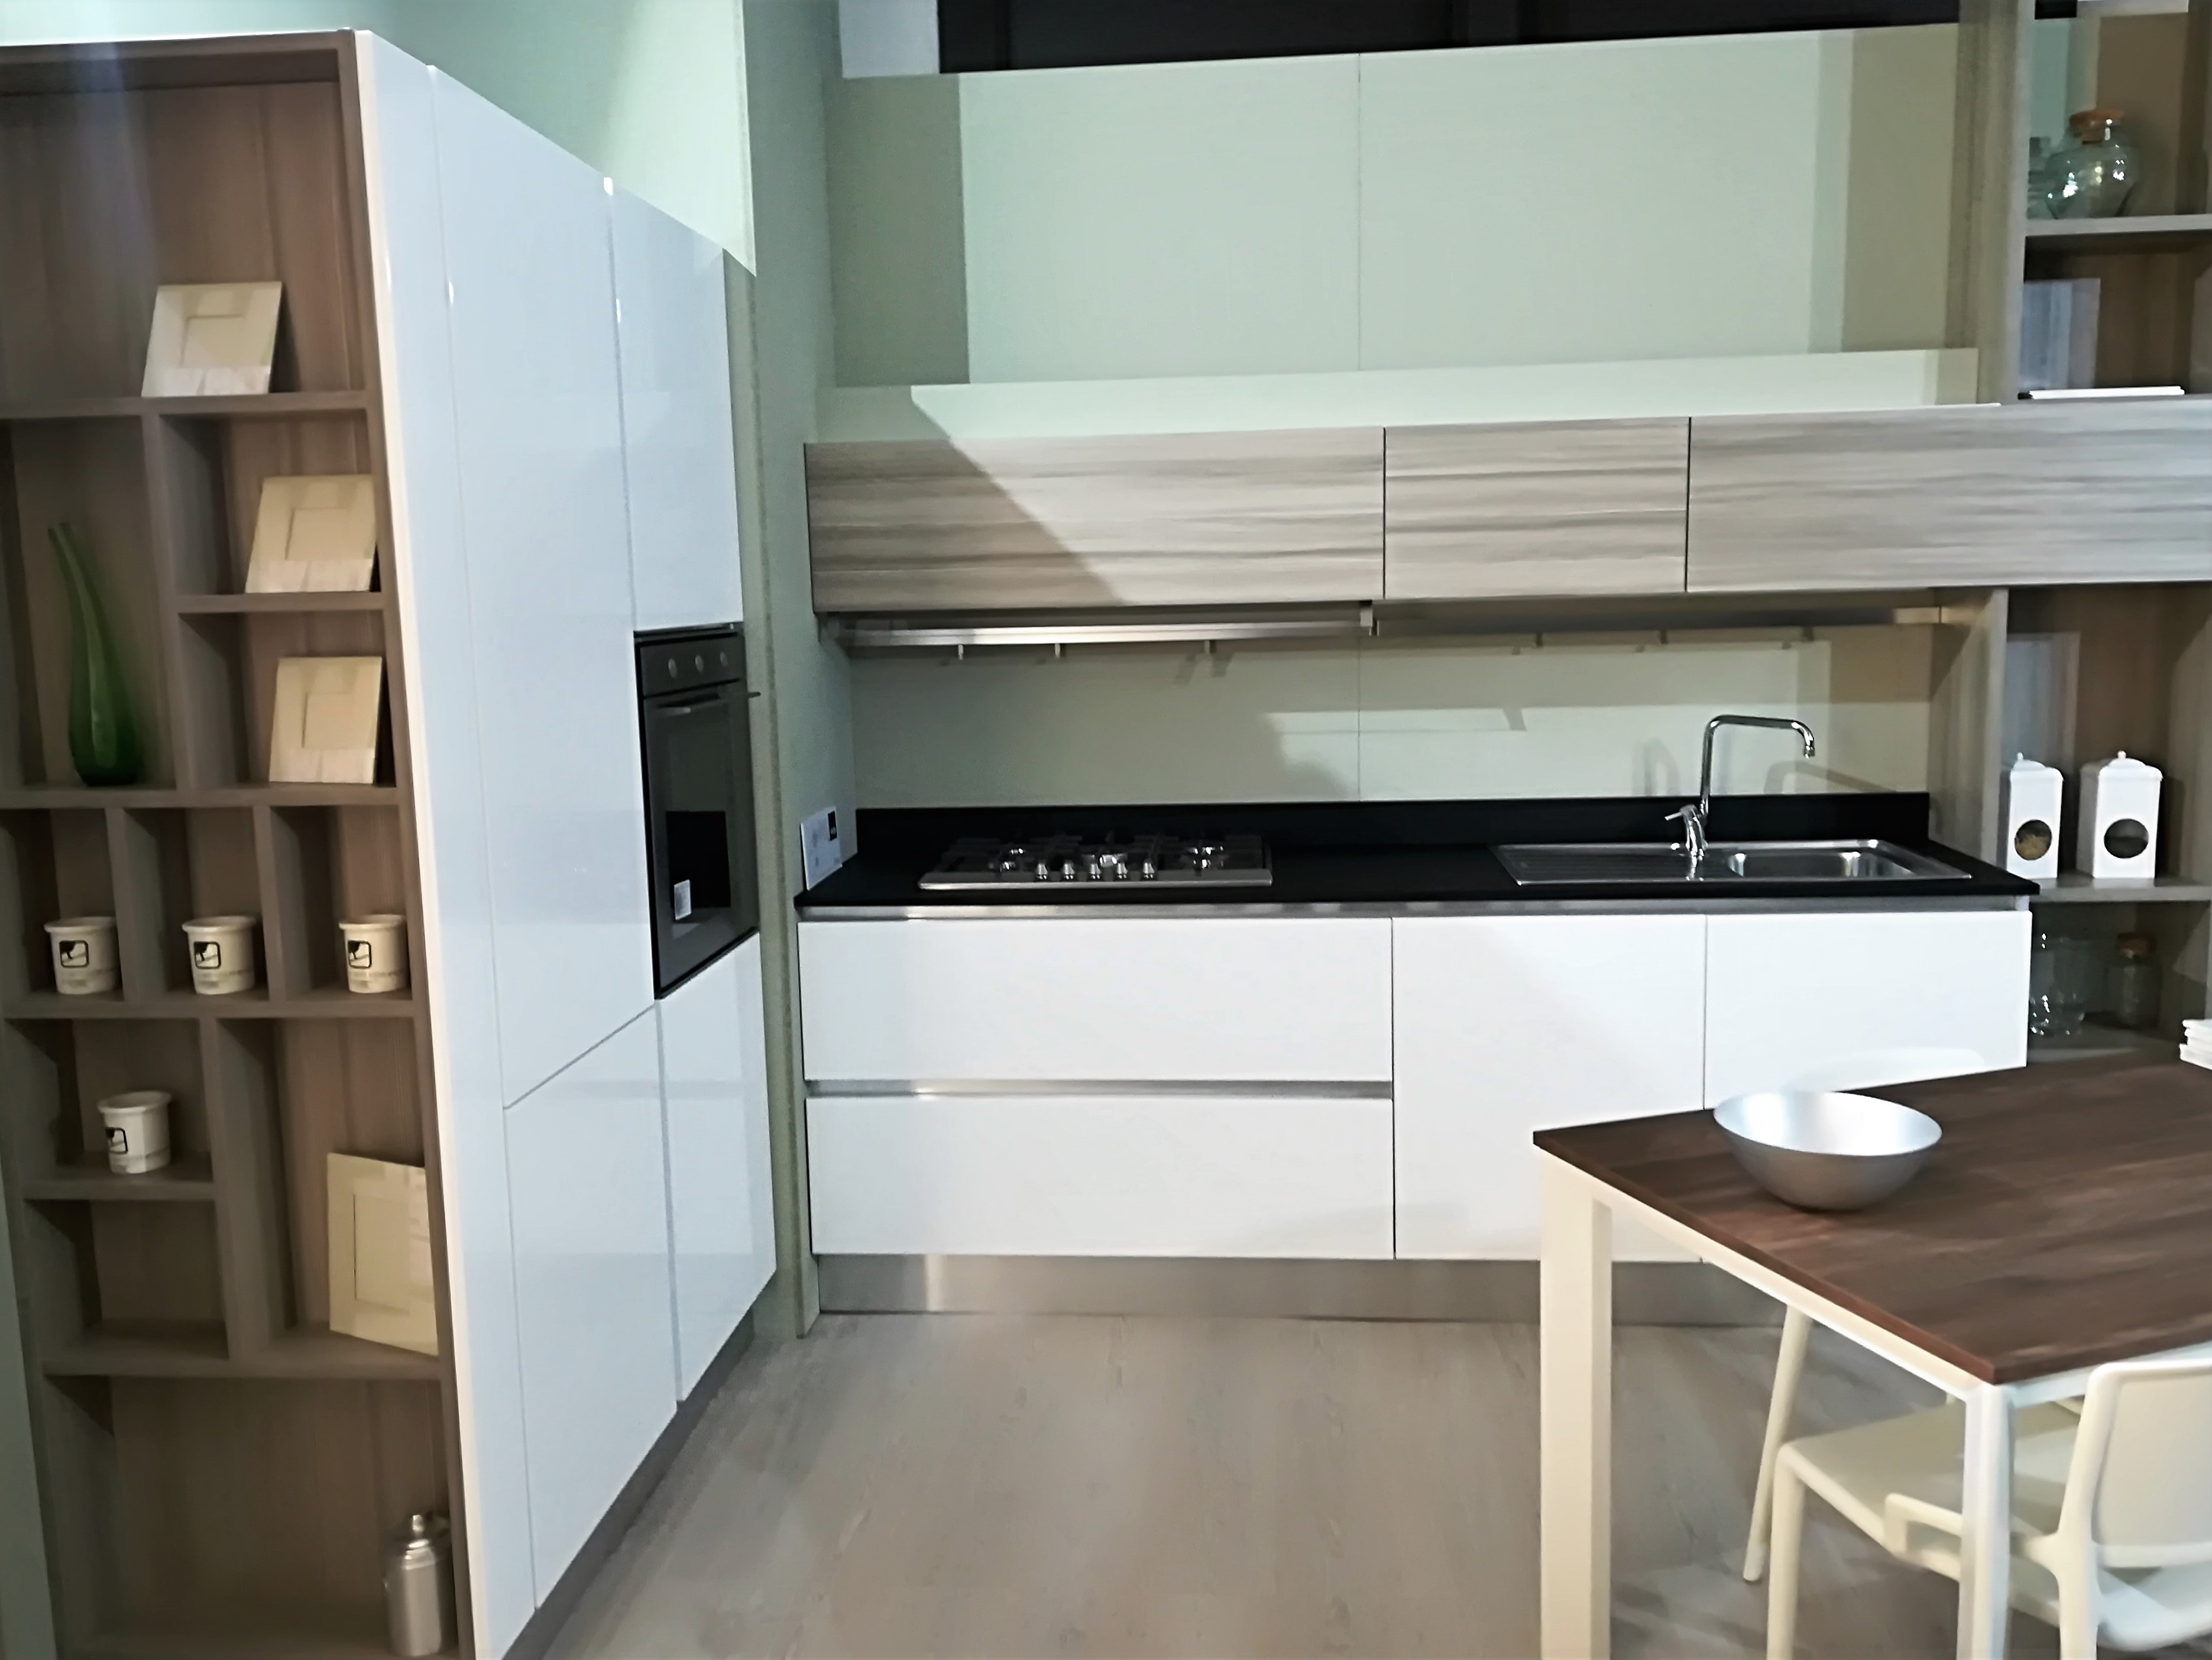 Cucina Aran Prezzi. Full Size Of Kitchen Kitchen Veneta Cucine ...